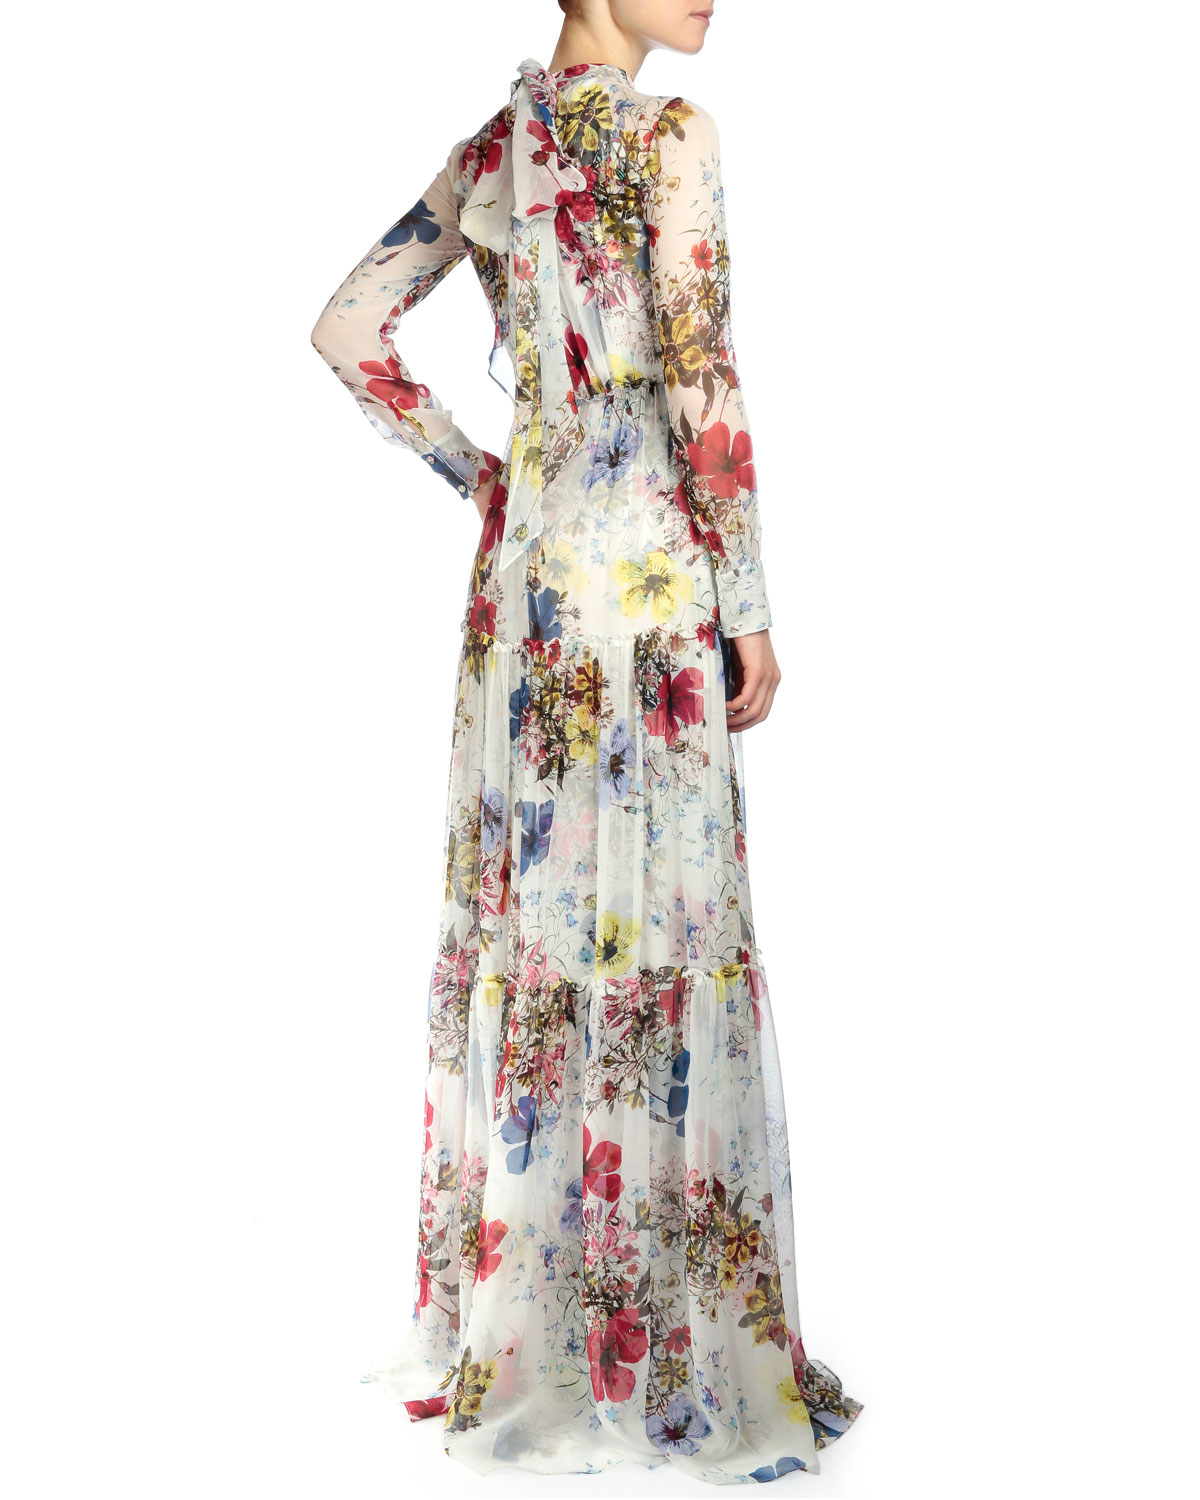 Where to buy floral dresses